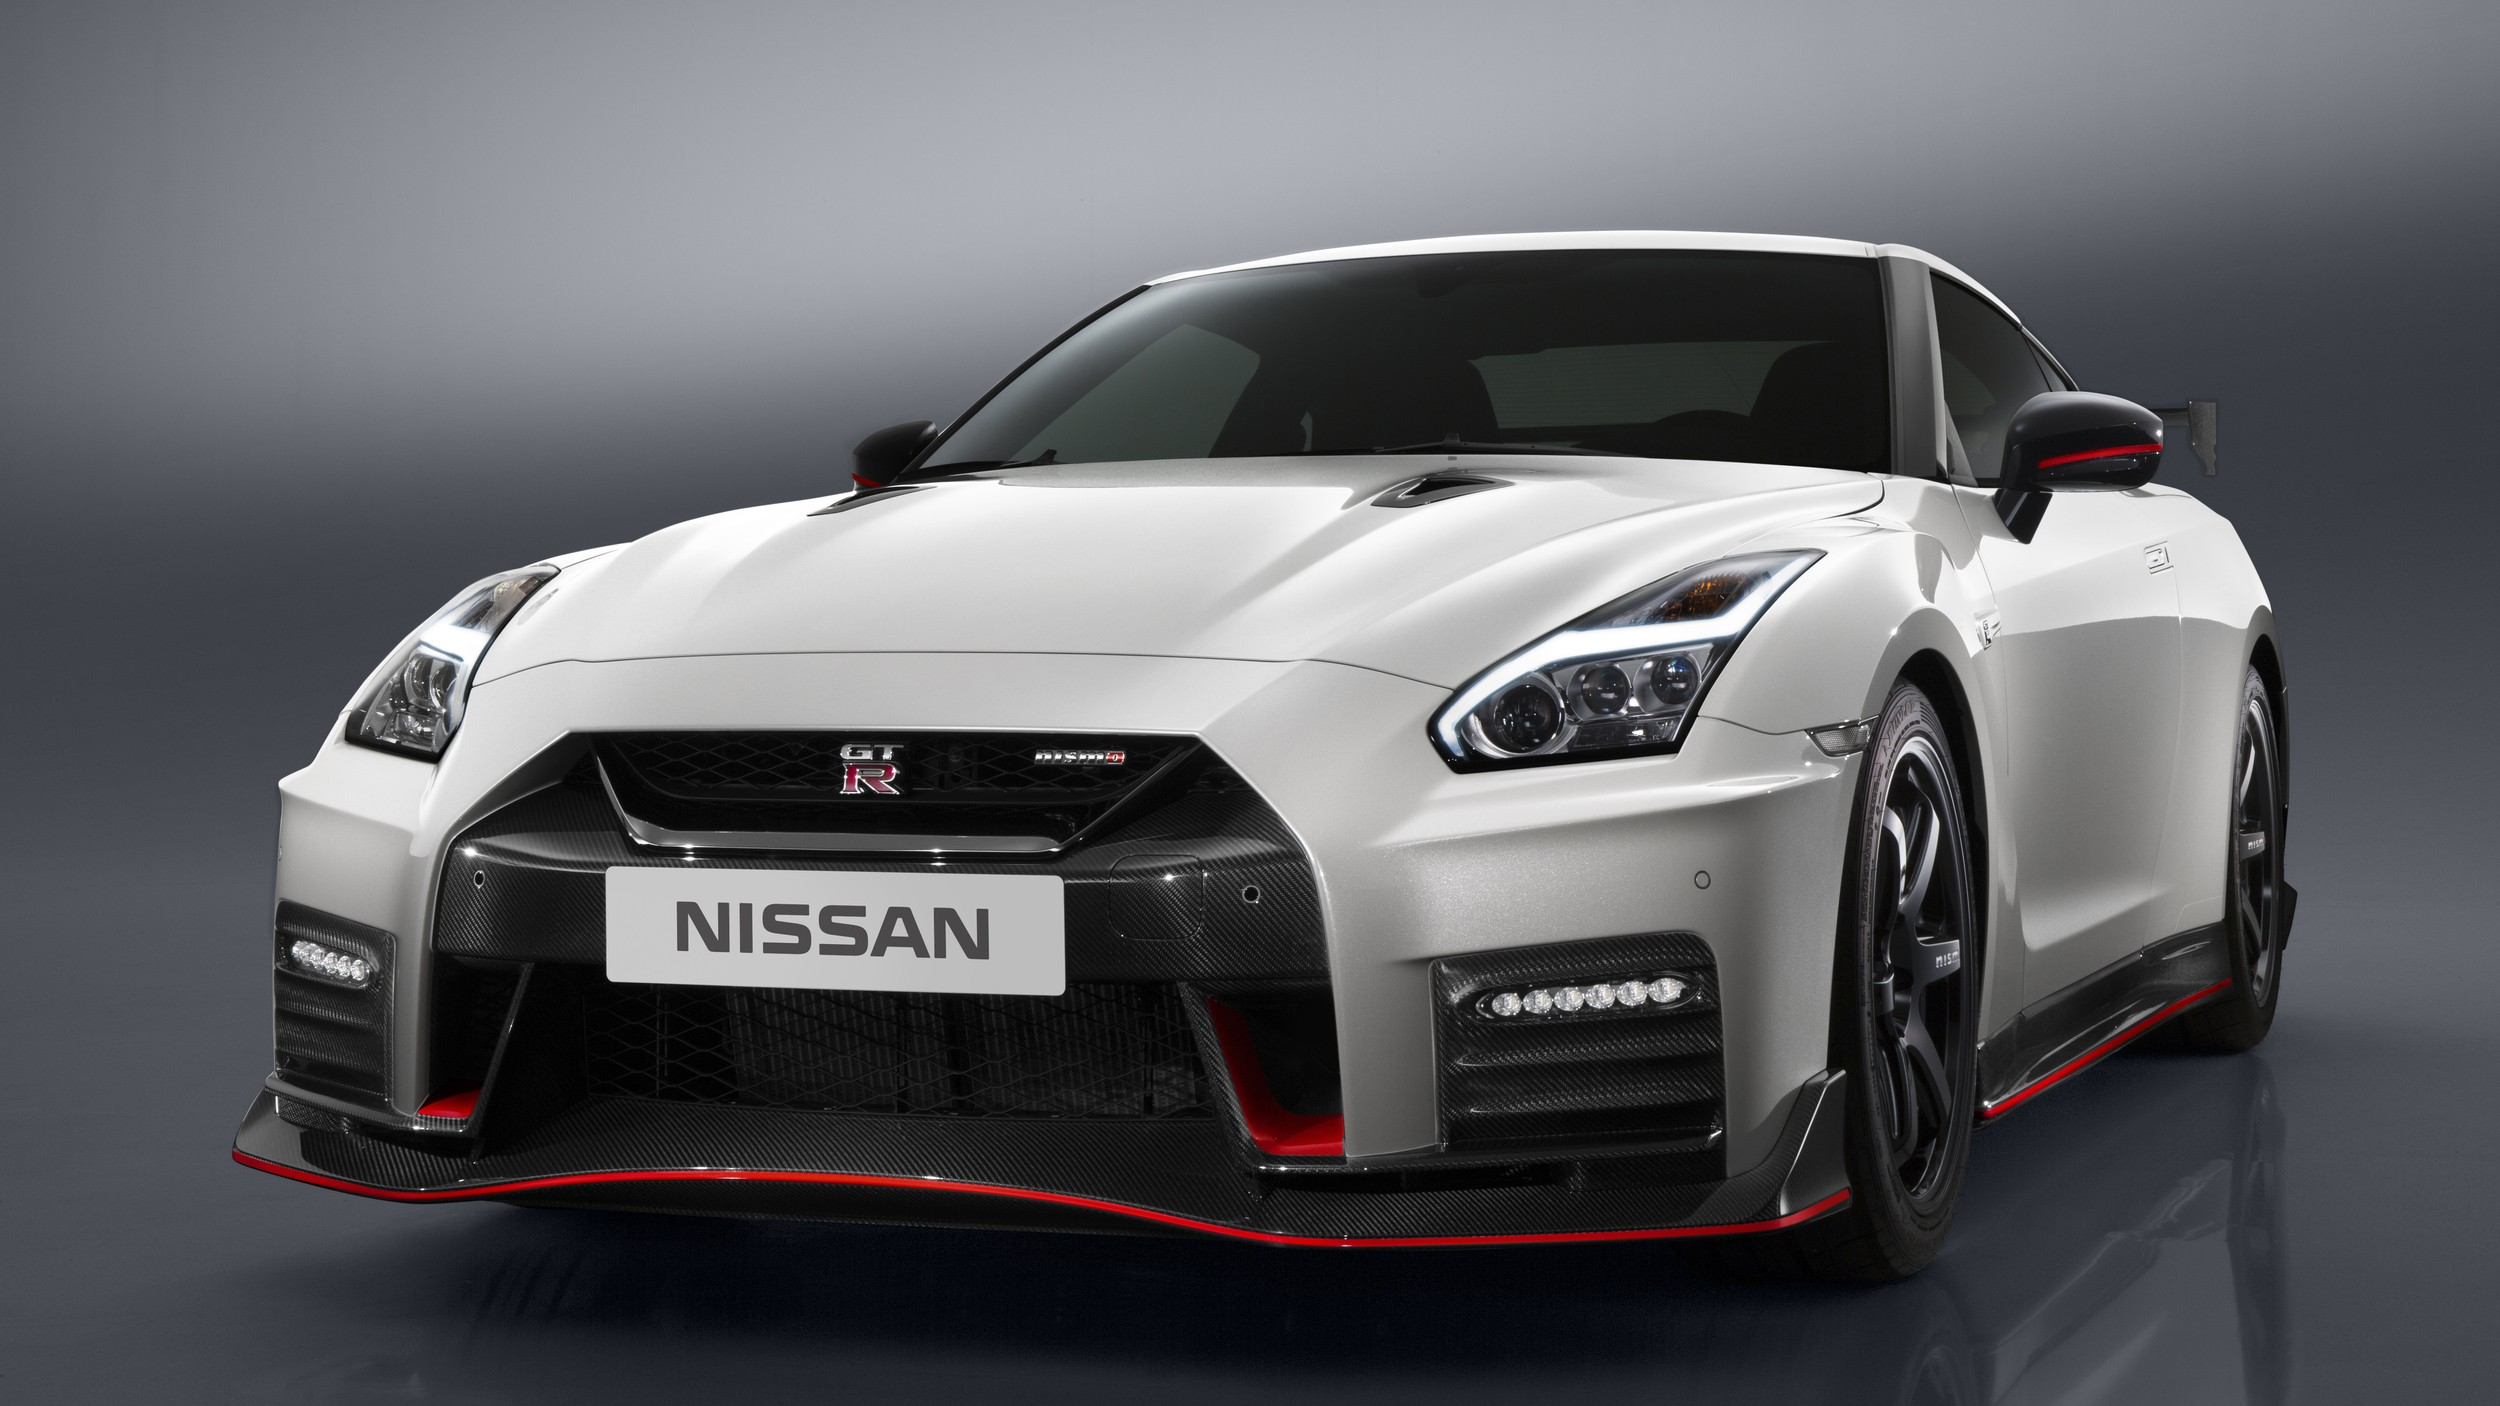 2021 Nissan Gt R What We Know So Far Autoevolution